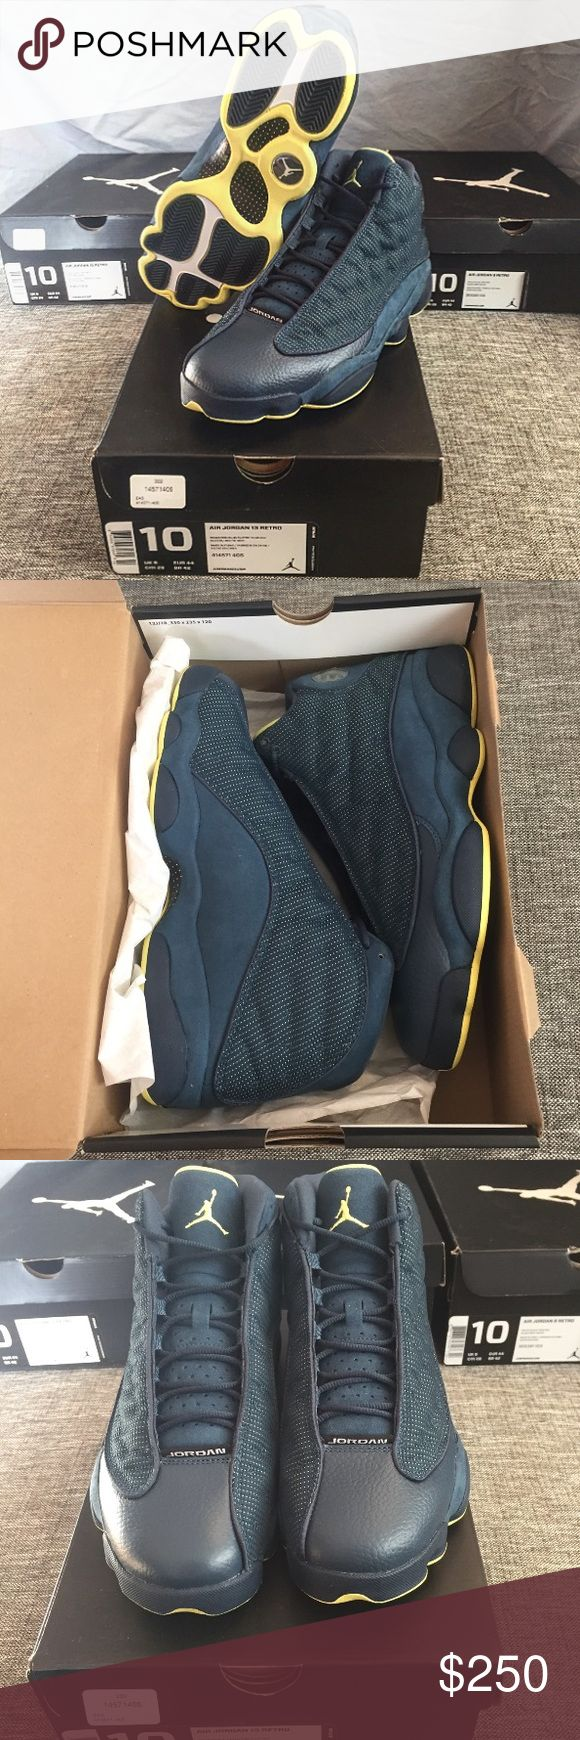 Nike Jordan XIII 13 Squadron Shoes, Size 10 Authentic men's Nike Jordan XIII 13 Squadron shoes in blue with neon yellow. Never worn. Size 10. Box included. Jordan Shoes Sneakers